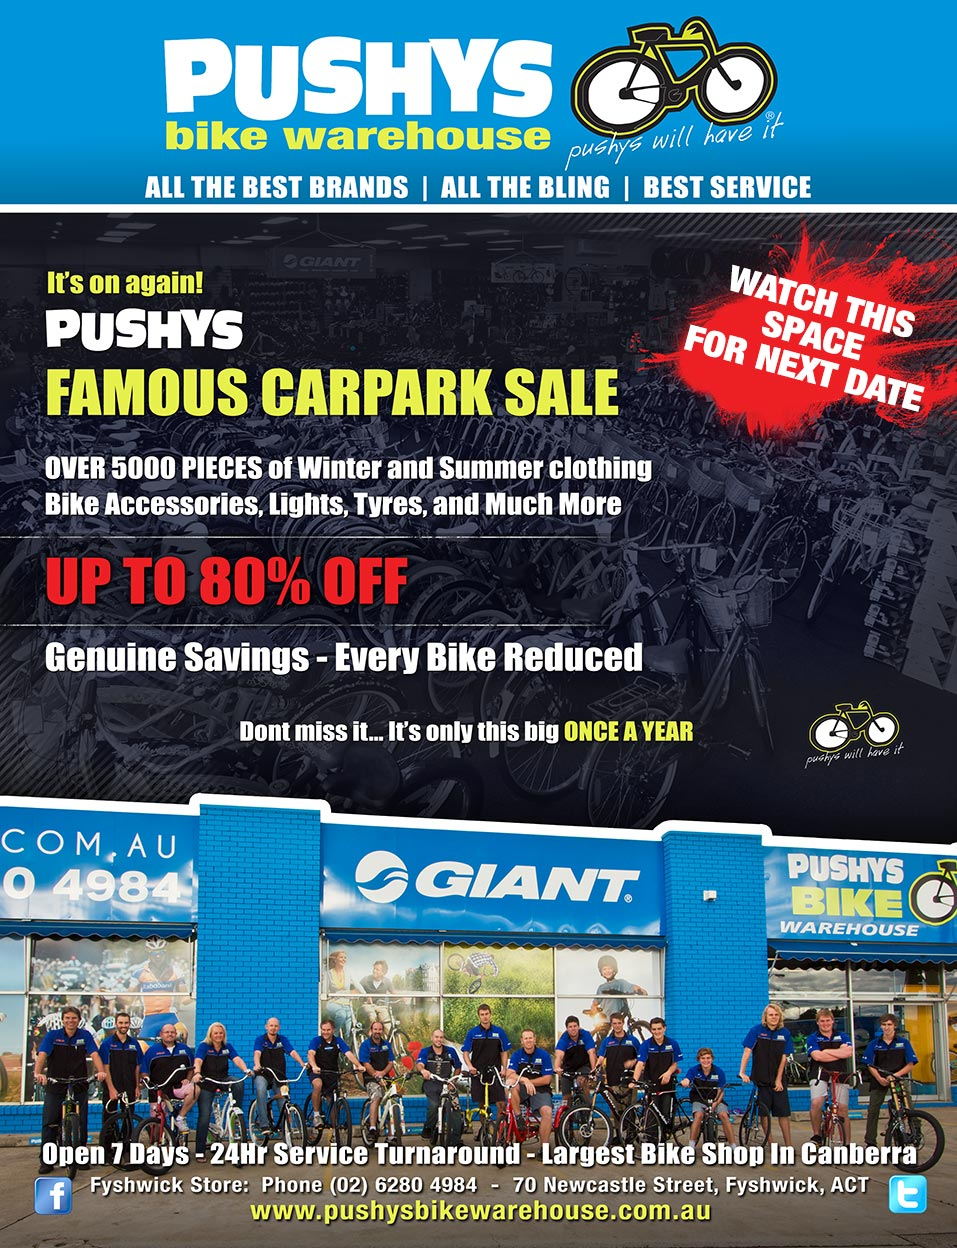 Pushys Bike Warehouse